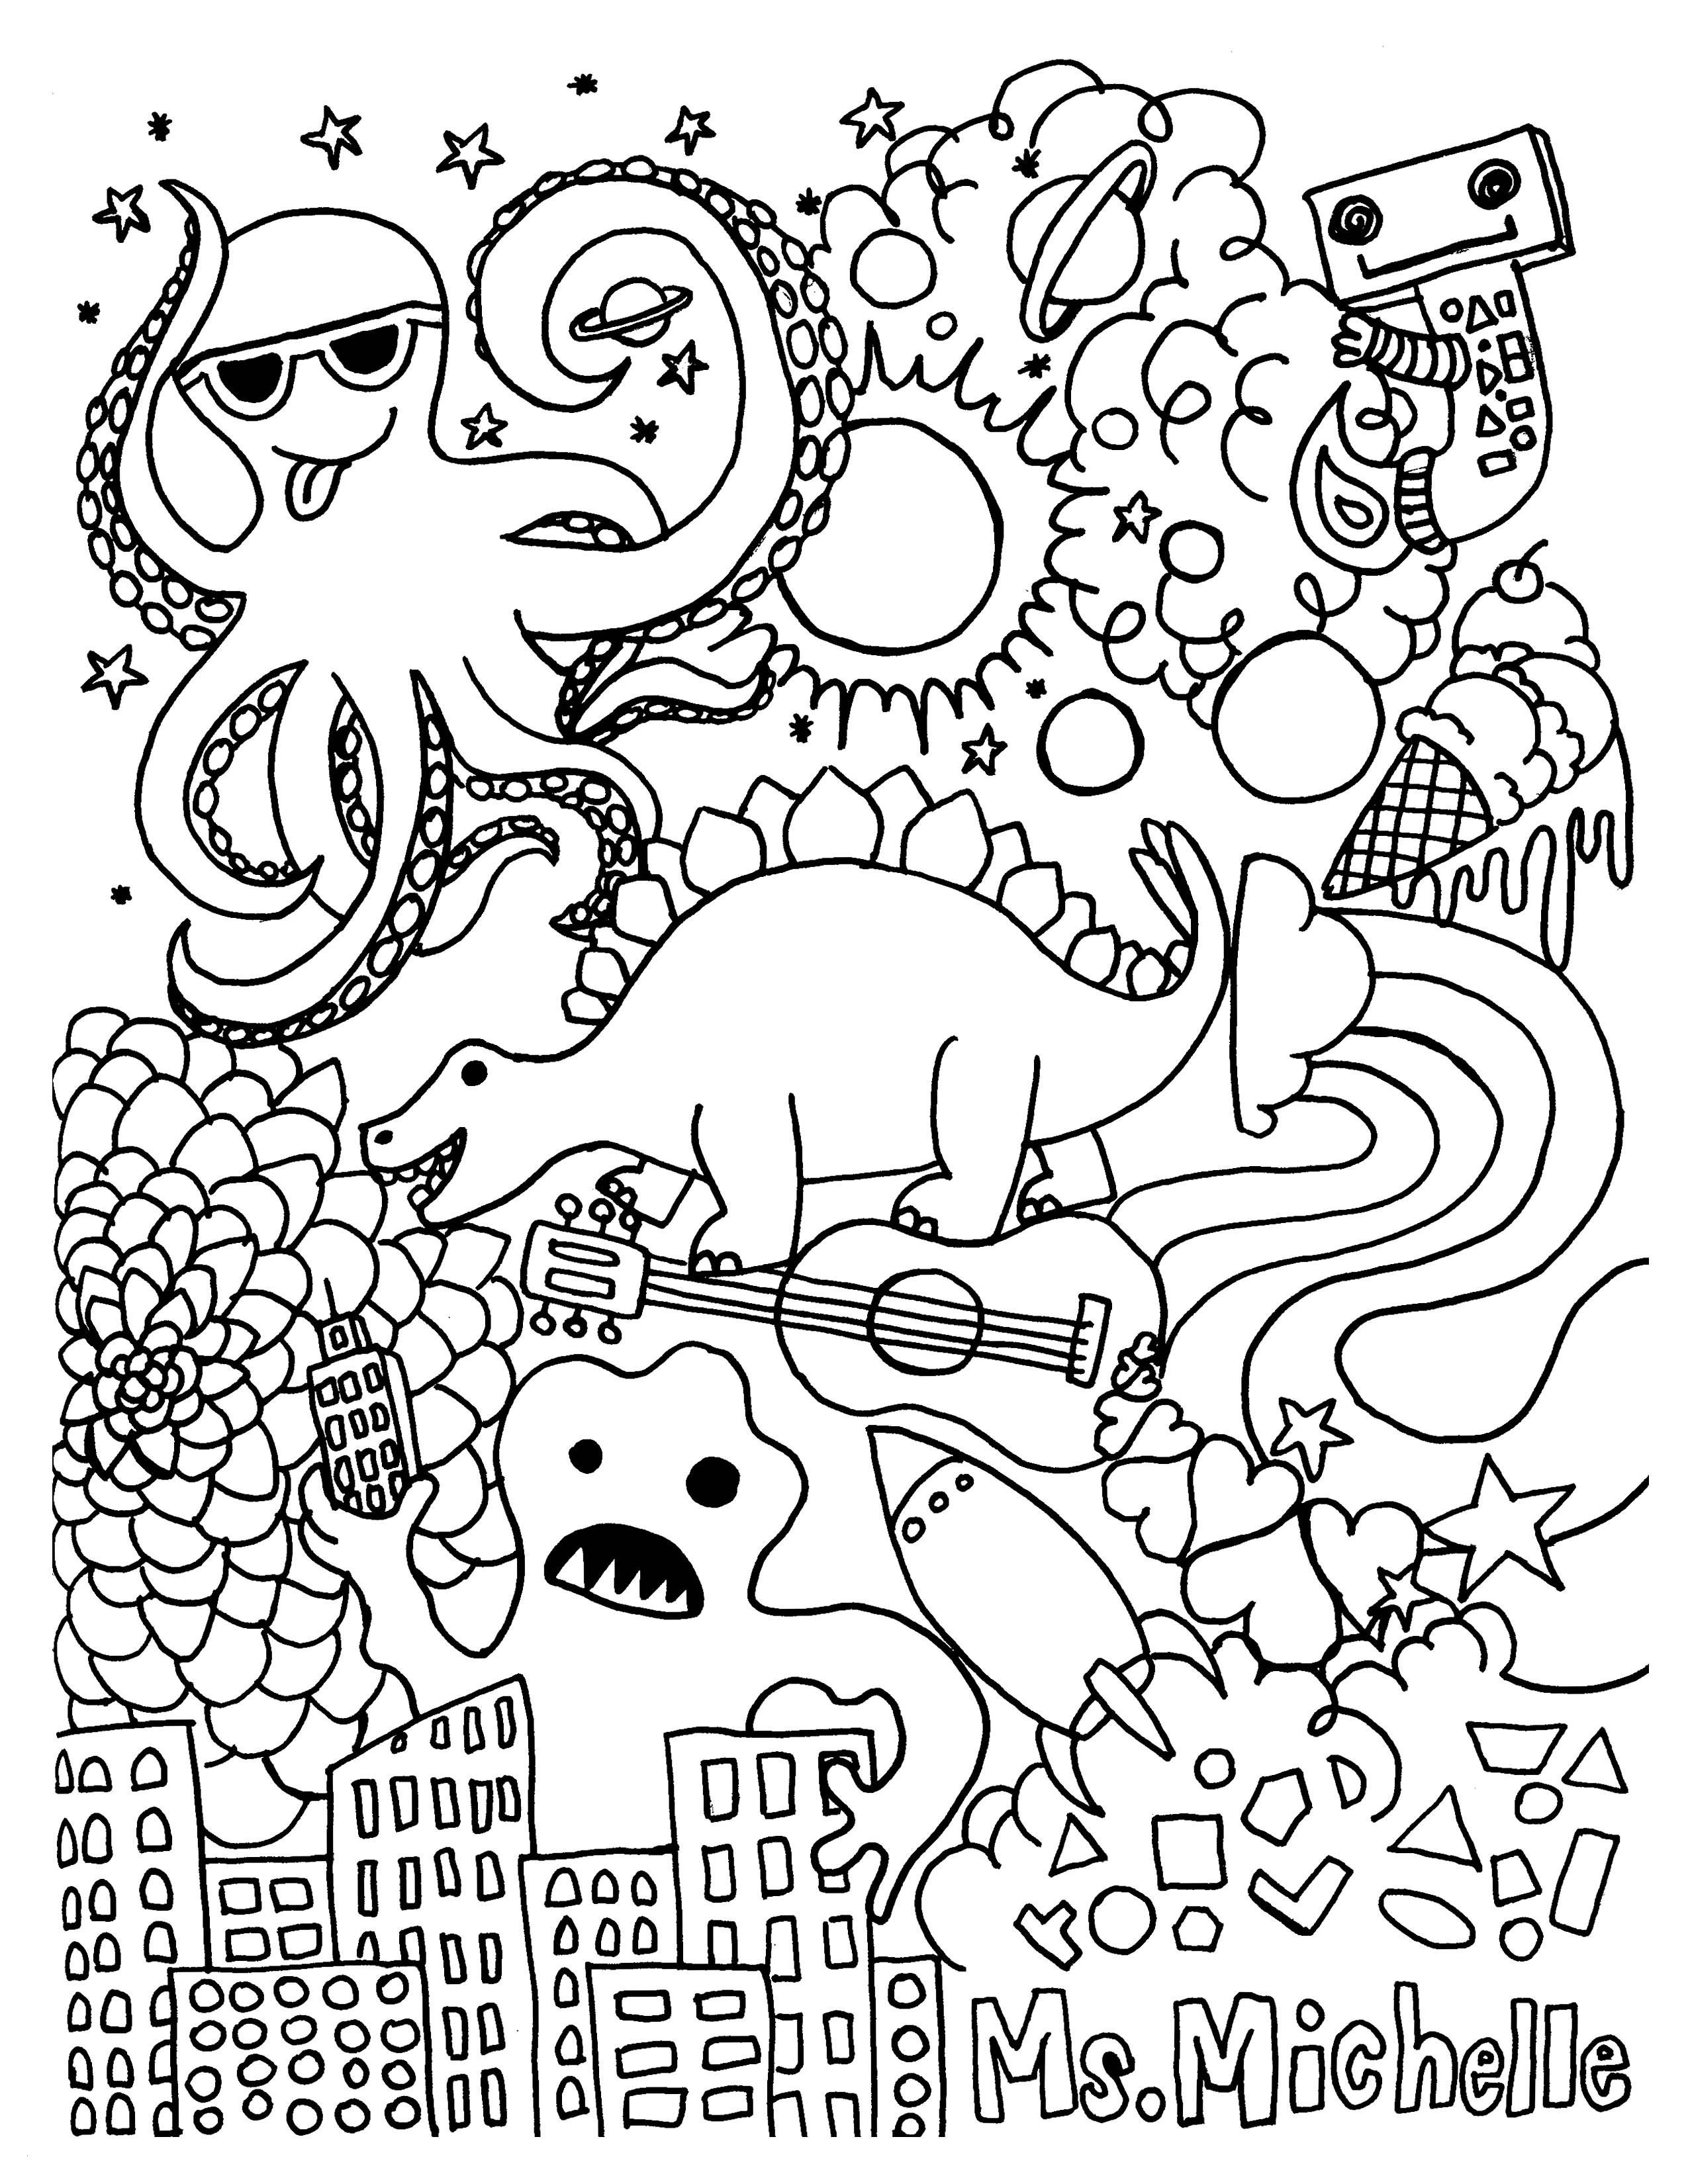 Arrow Coloring Pages Arrow Coloring Pages Print Nauhoitus All About 10k Top